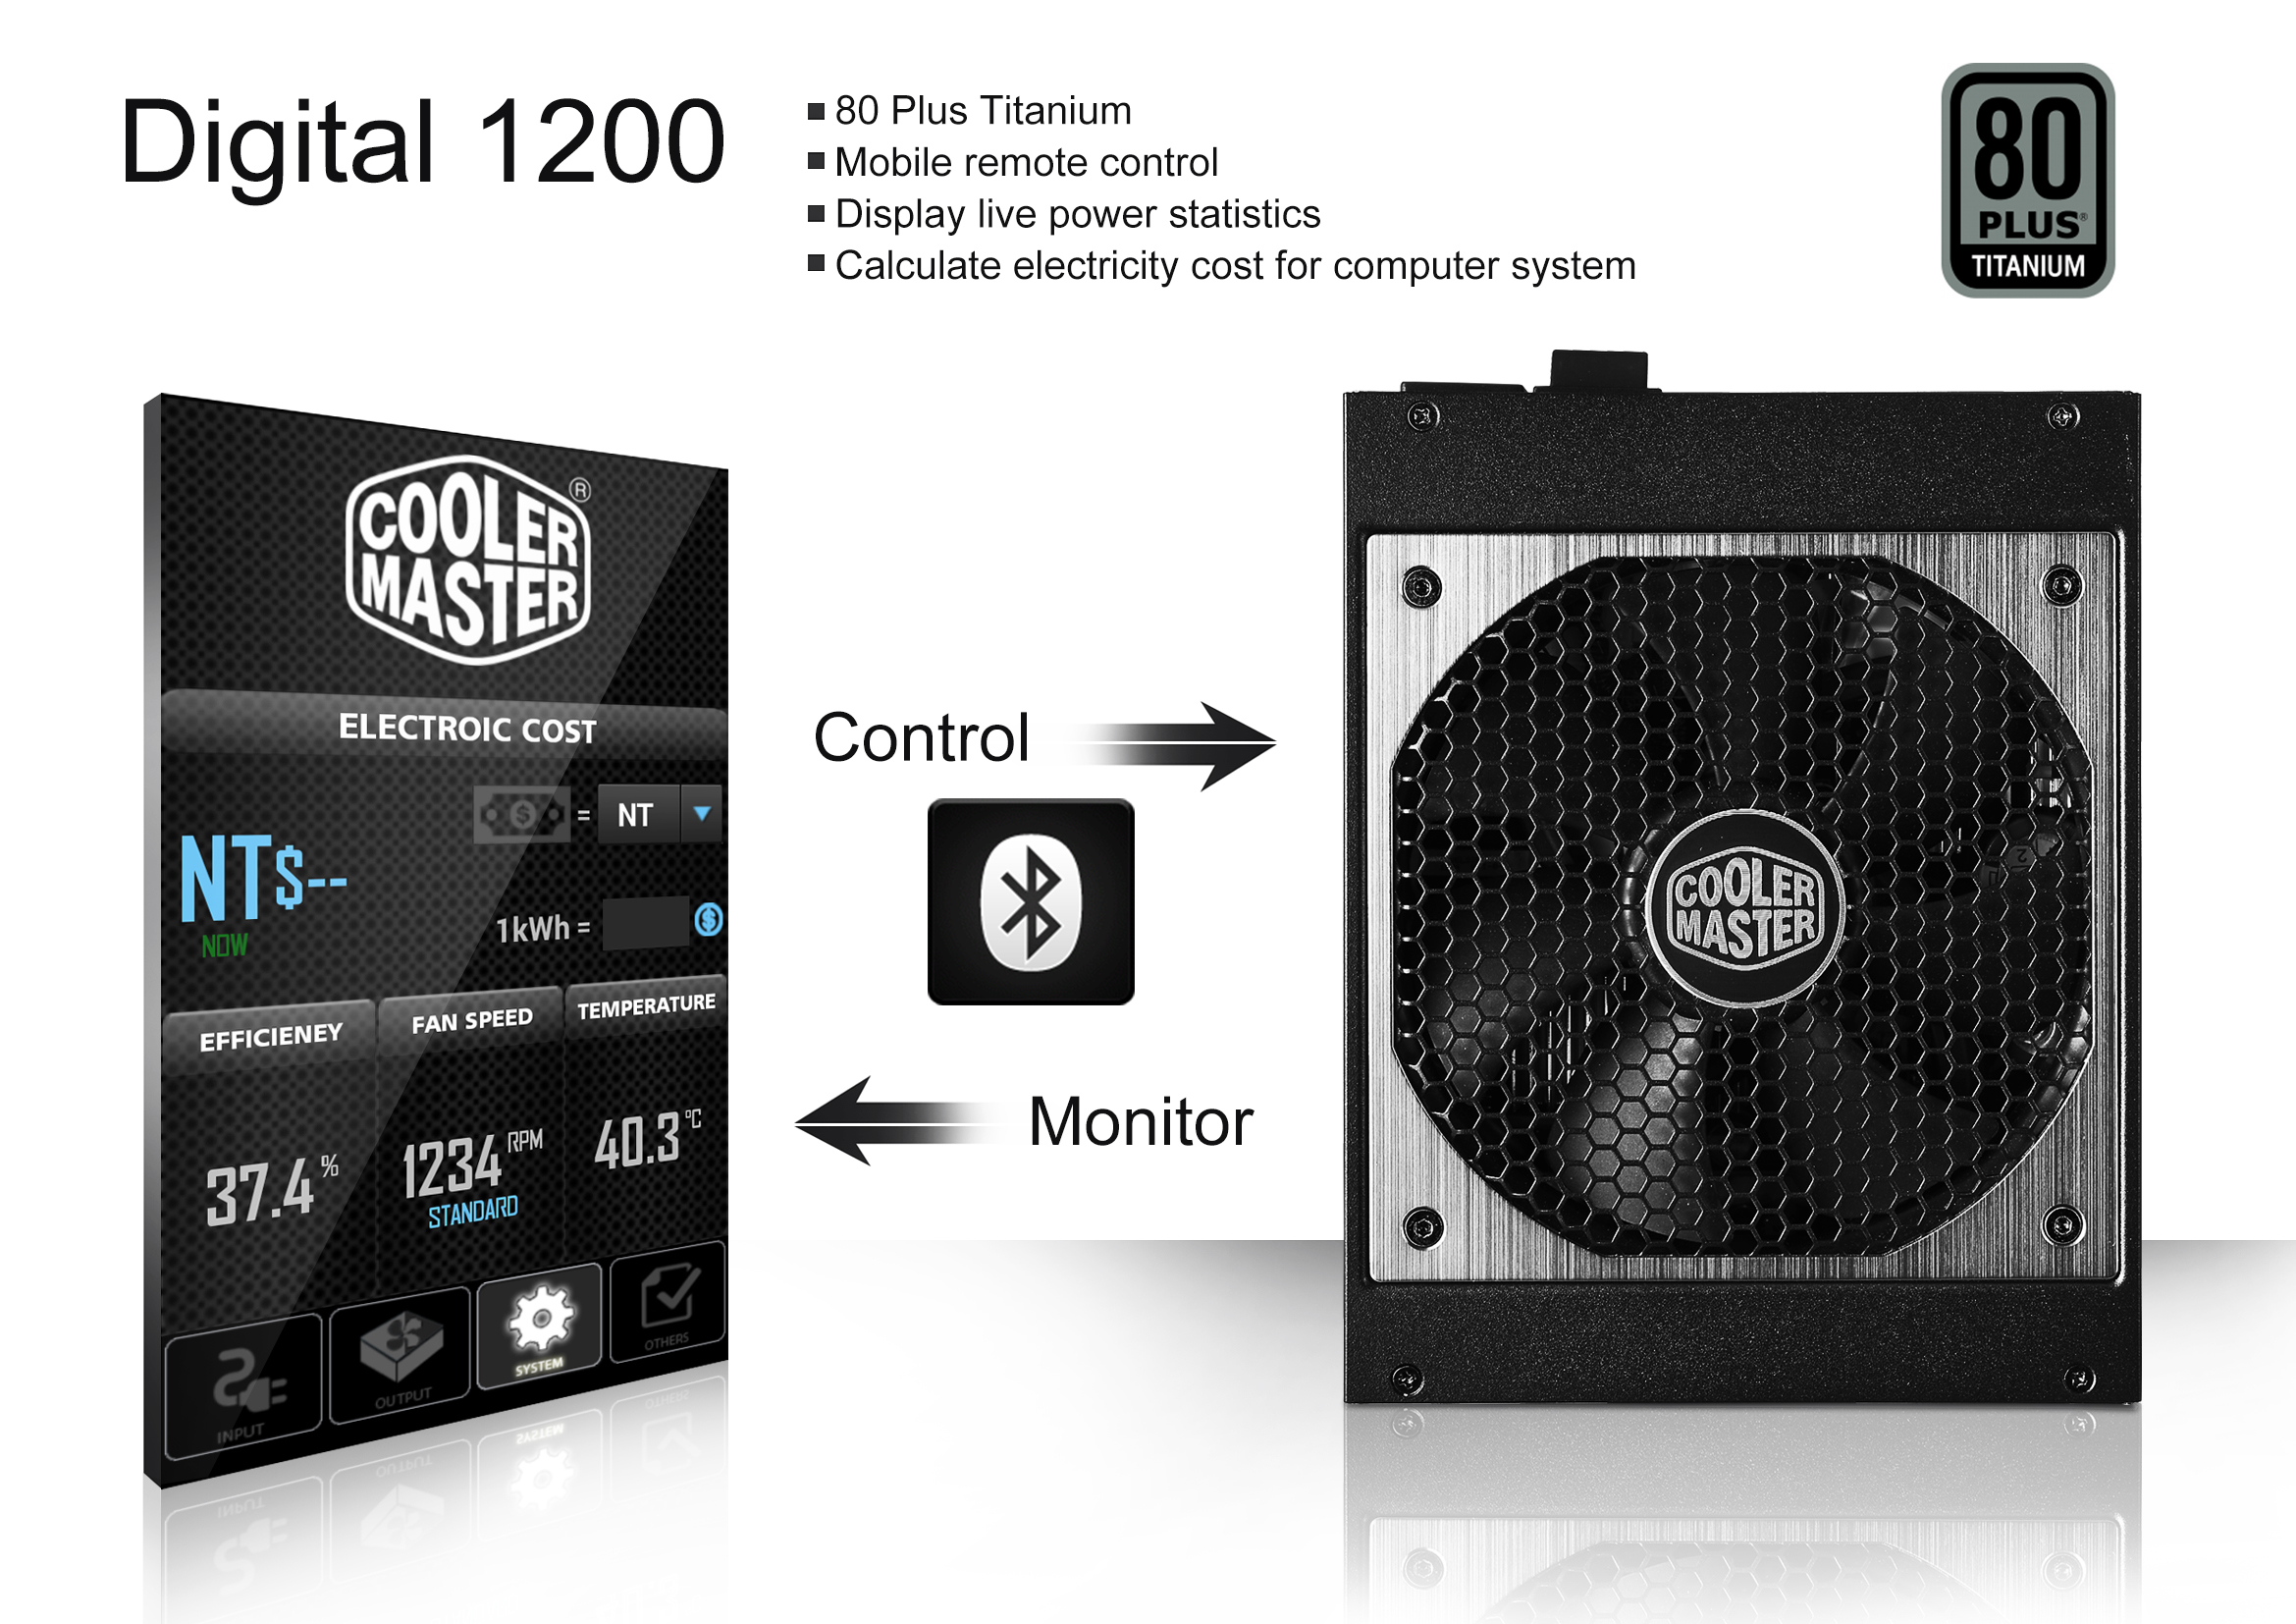 The Cooler Master Digital 1200 Titanium PSU can be controlled via an app.